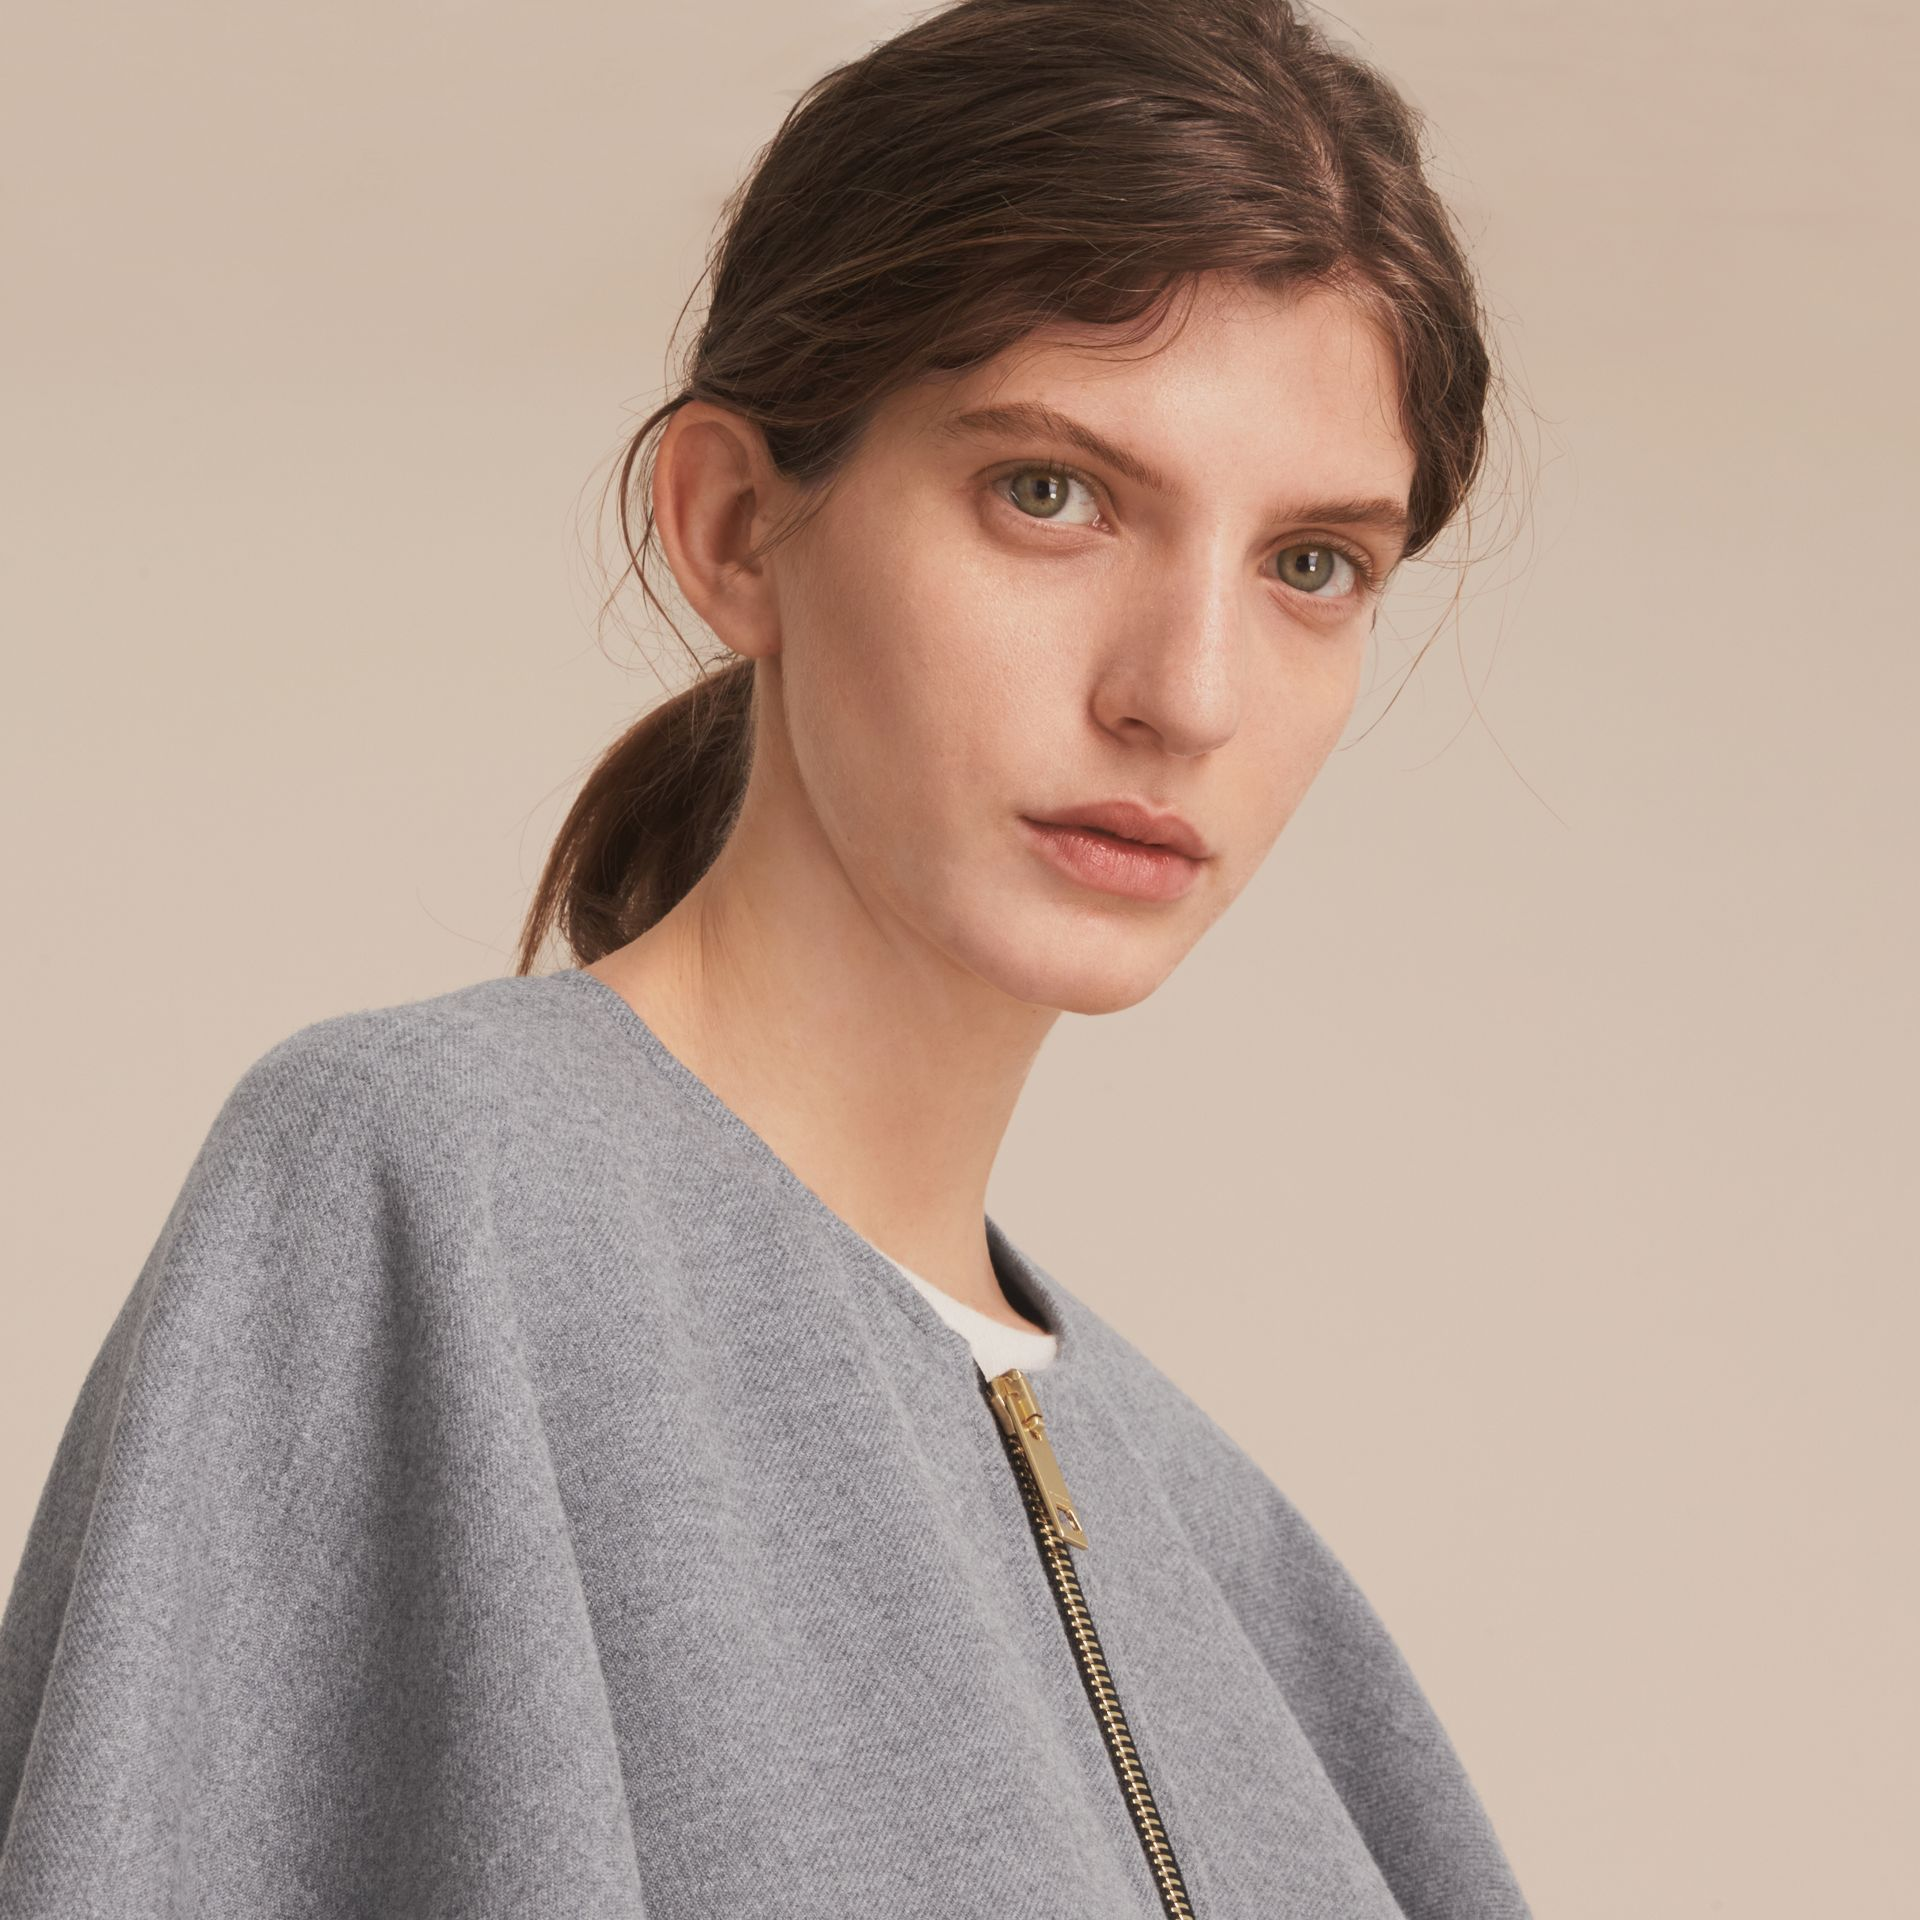 Merino Wool Poncho in Light Grey - Women | Burberry - gallery image 5